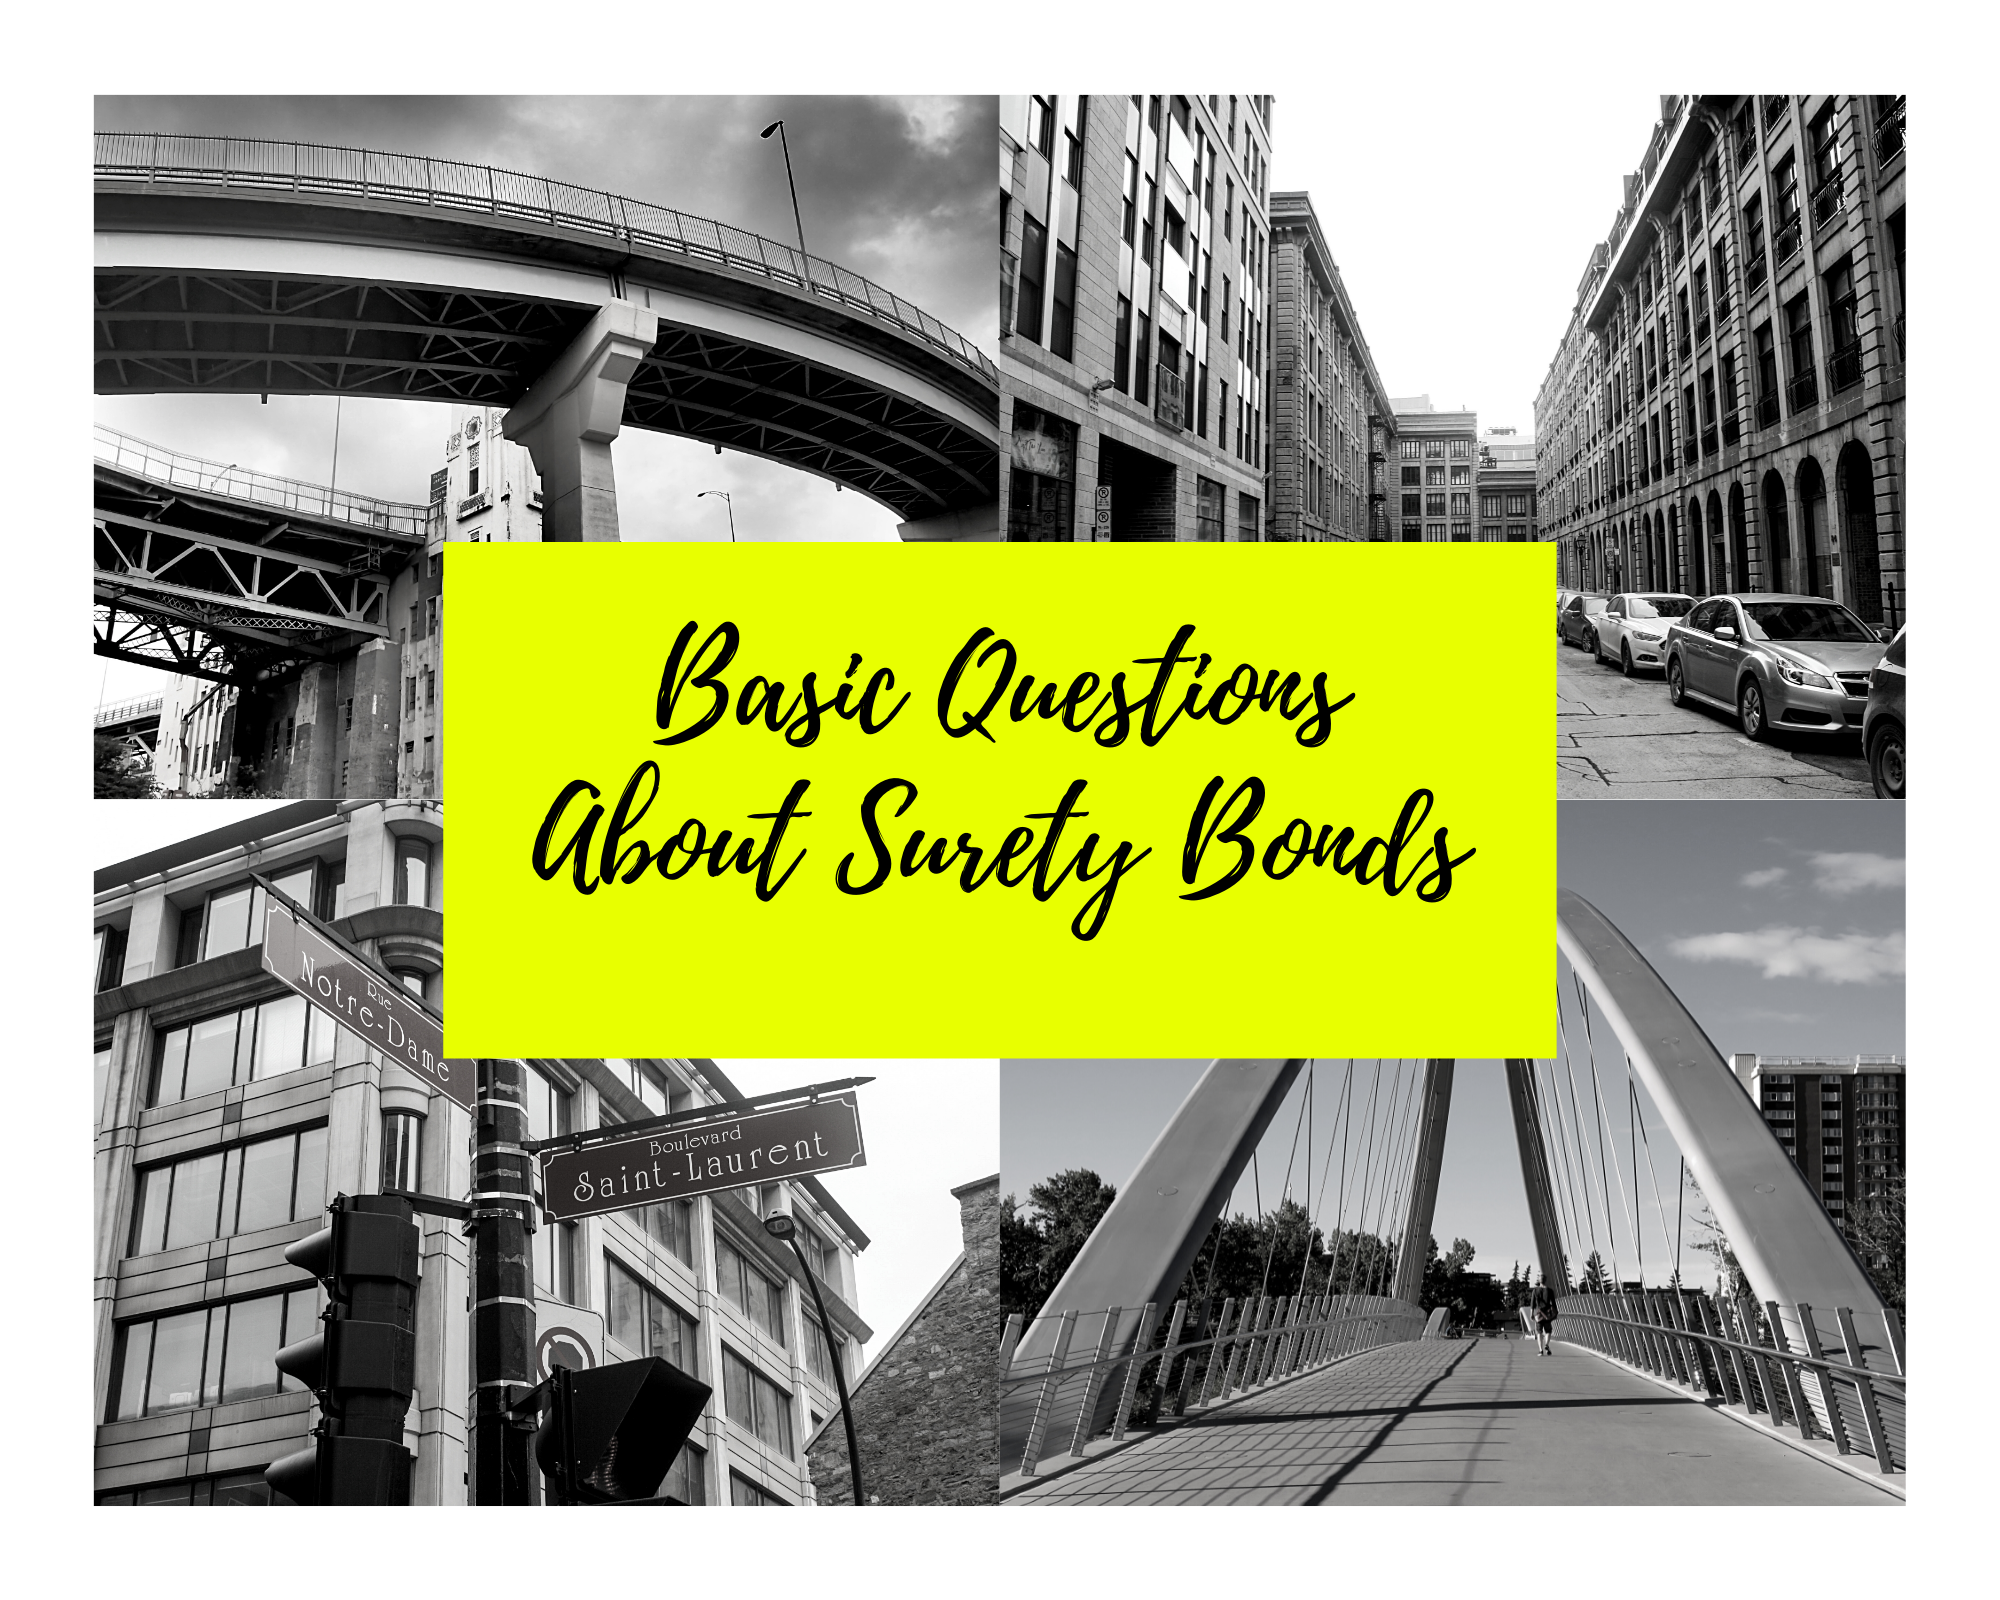 surety bonds - what is the definition of a surety bond - places in canada in black and white